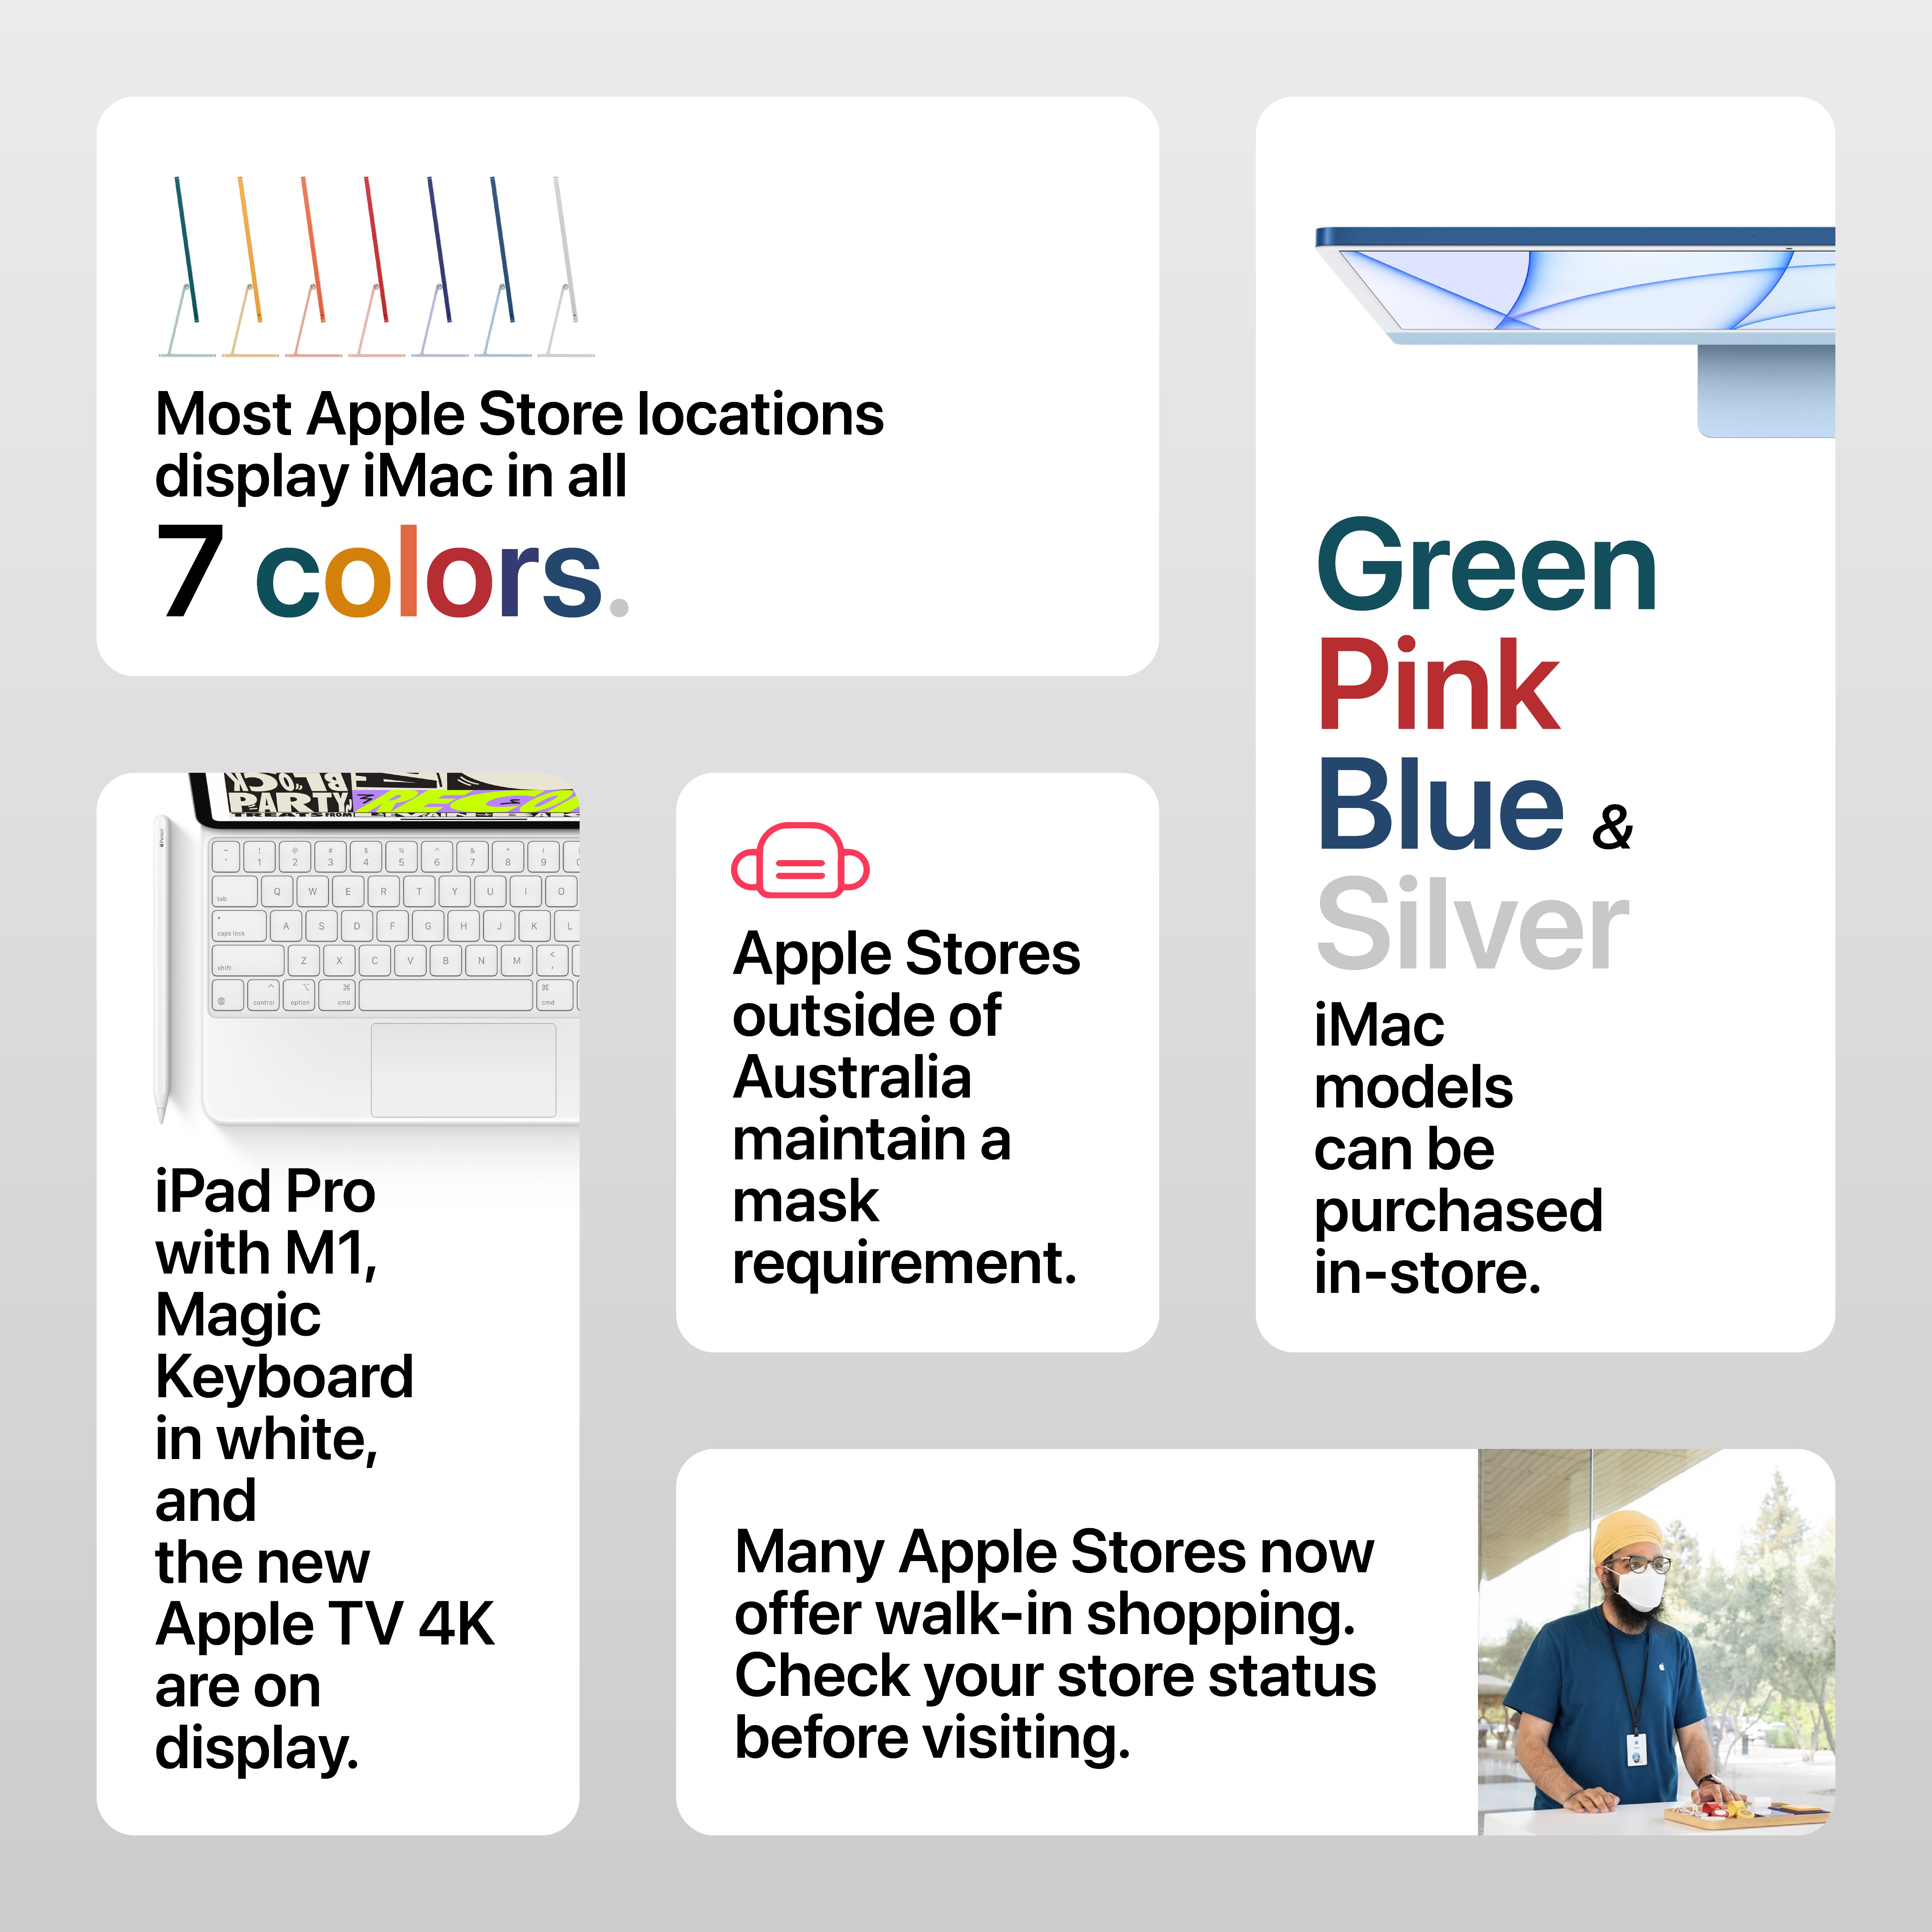 How to visit an Apple Store to see iMac, iPad Pro with M1, and Apple TV 4K.